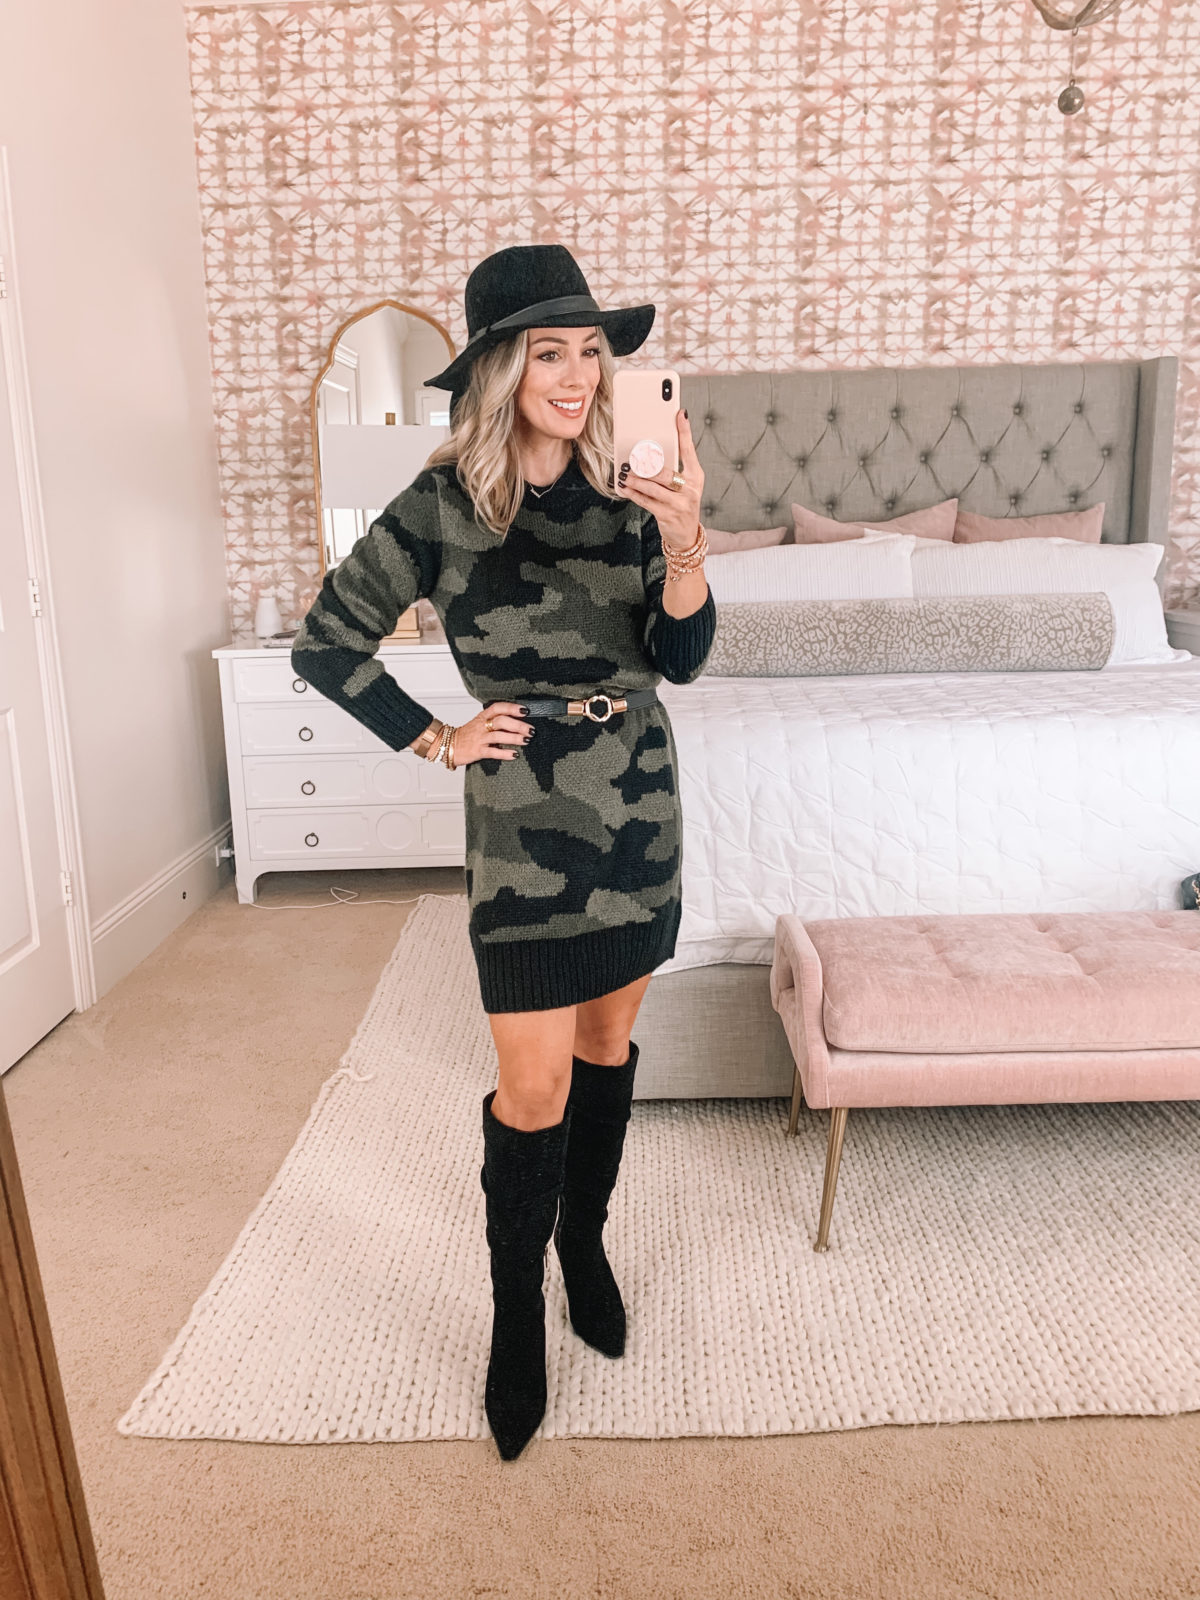 Walmart Fashion Finds, Camo Sweater Dress, Similar Belt, Knee High Boots, Hat